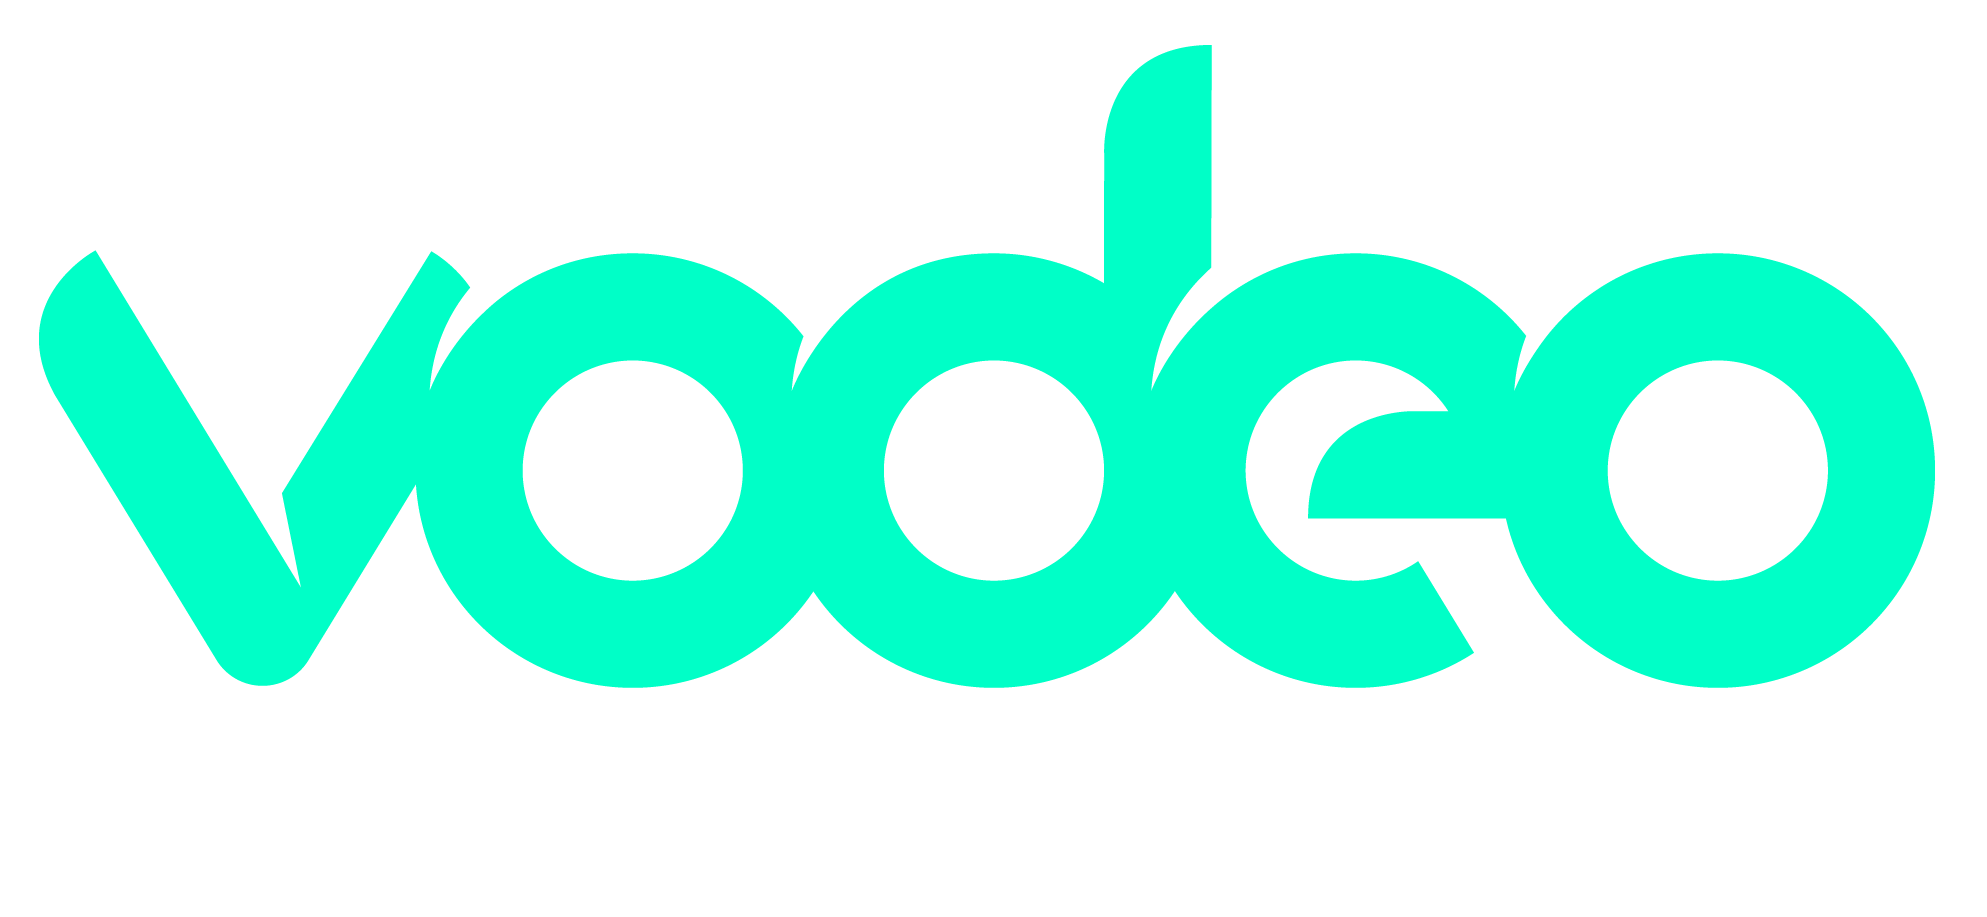 Vodeo Games logo